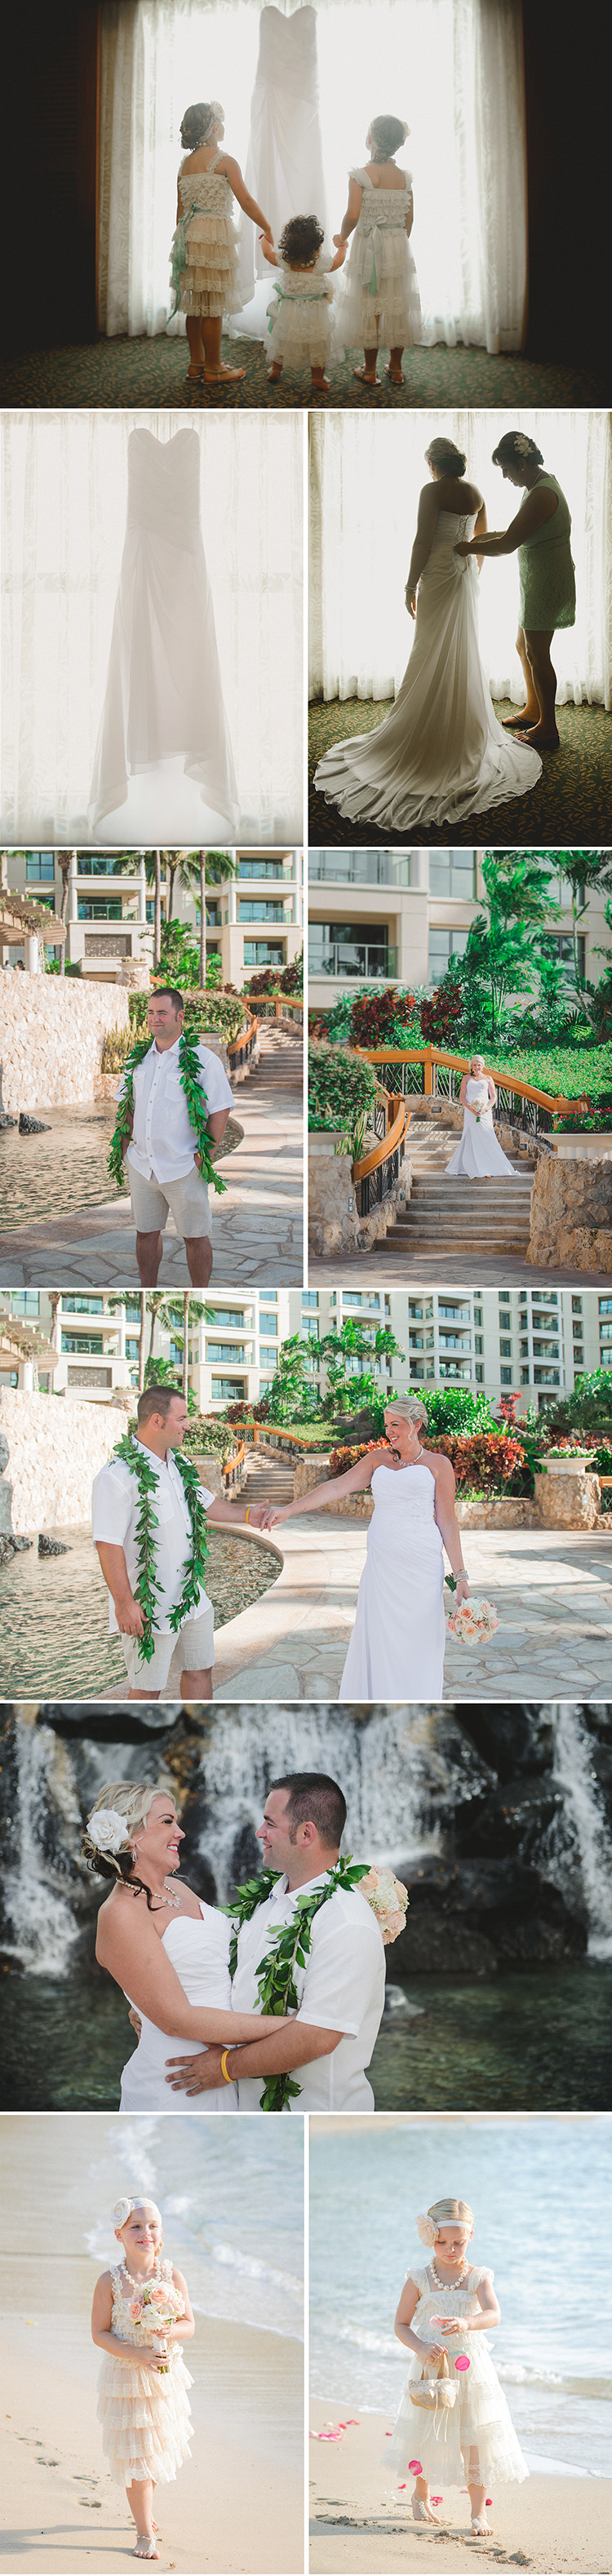 Elusive Visions Hawaii Wedding Photographer1